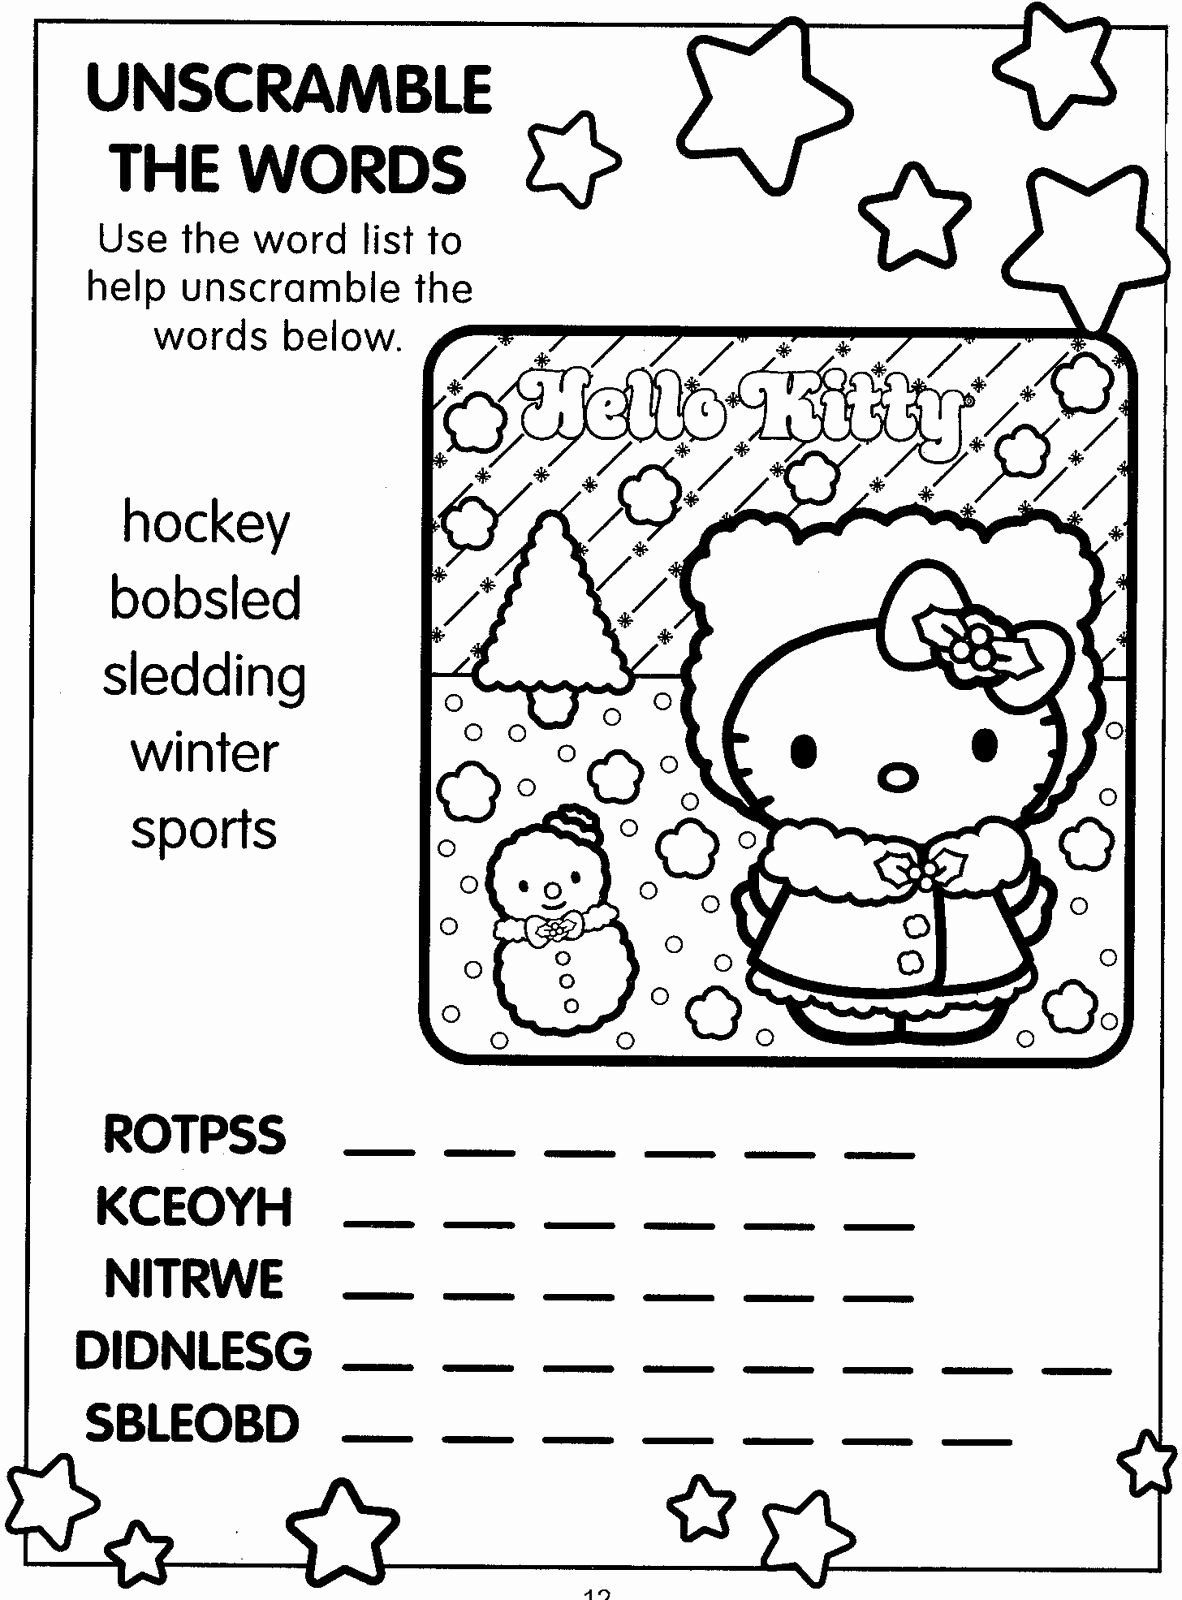 Word Party Coloring Pages Inspirational Xmas Coloring Pages Hello Kitty Xmas Activity Page Word Hello Kitty Colouring Pages Hello Kitty Coloring Kitty Coloring